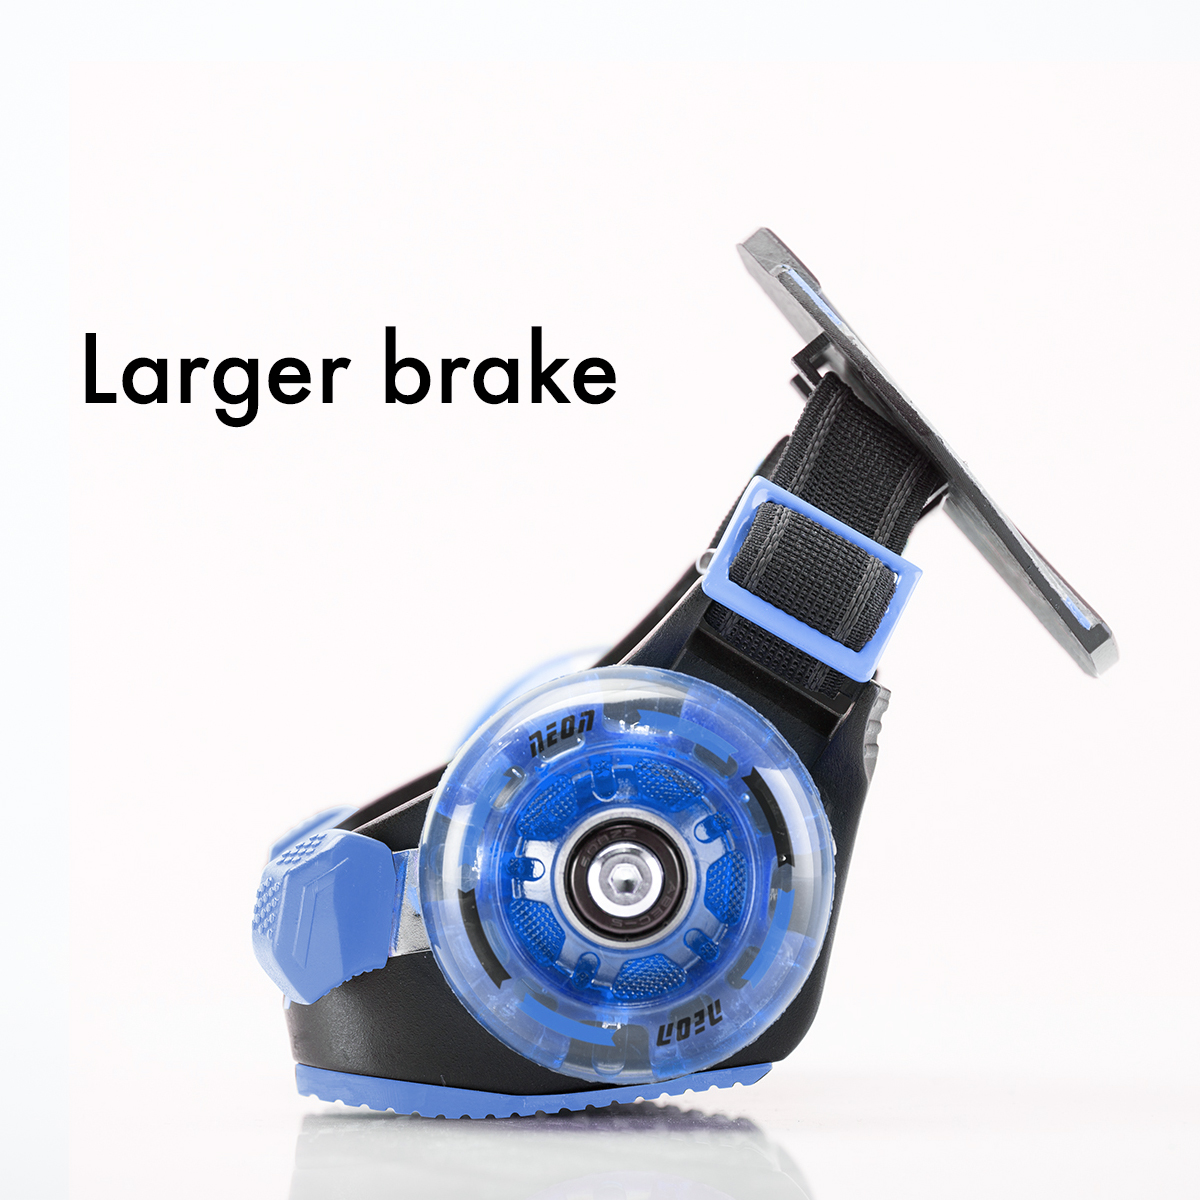 Larger brakes for stopping quickly